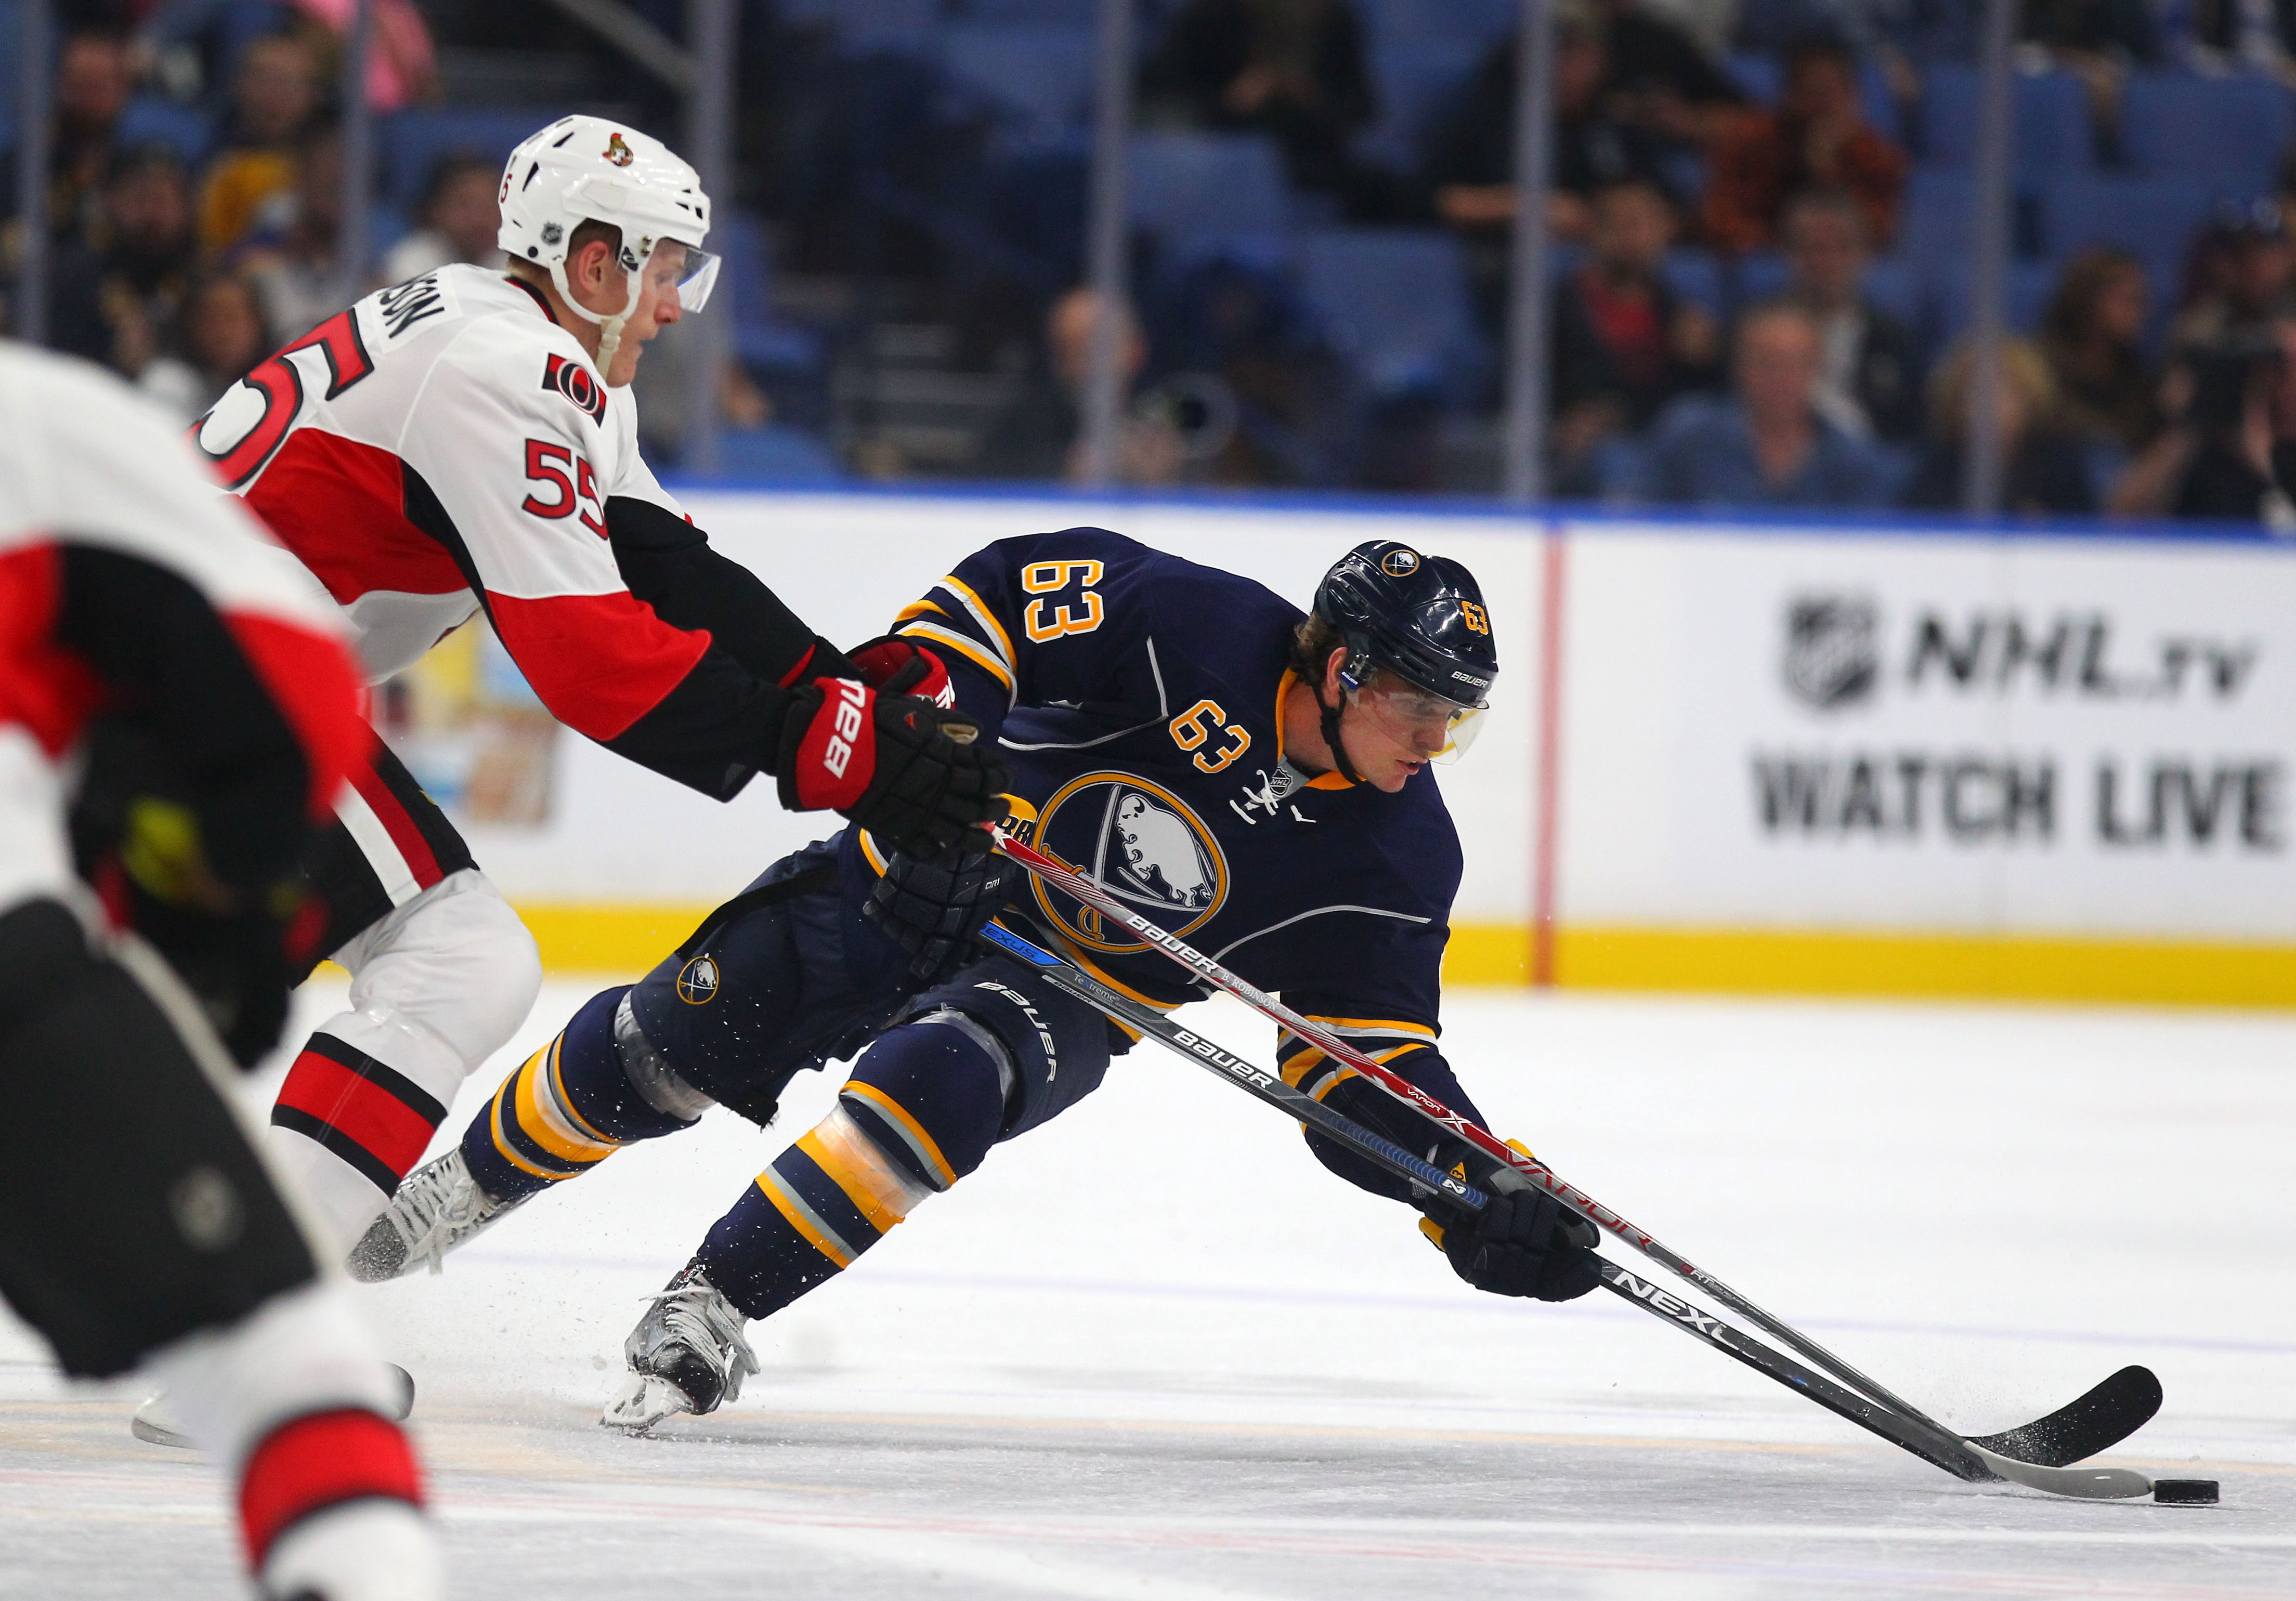 The Sabres' Tyler Ennis tries to get past the Senators' Buddy Robinson in the first period of the game at the KeyBank Center in Buffalo Tuesday, Sept. 27, 2016.  (Mark Mulville/Buffalo News)